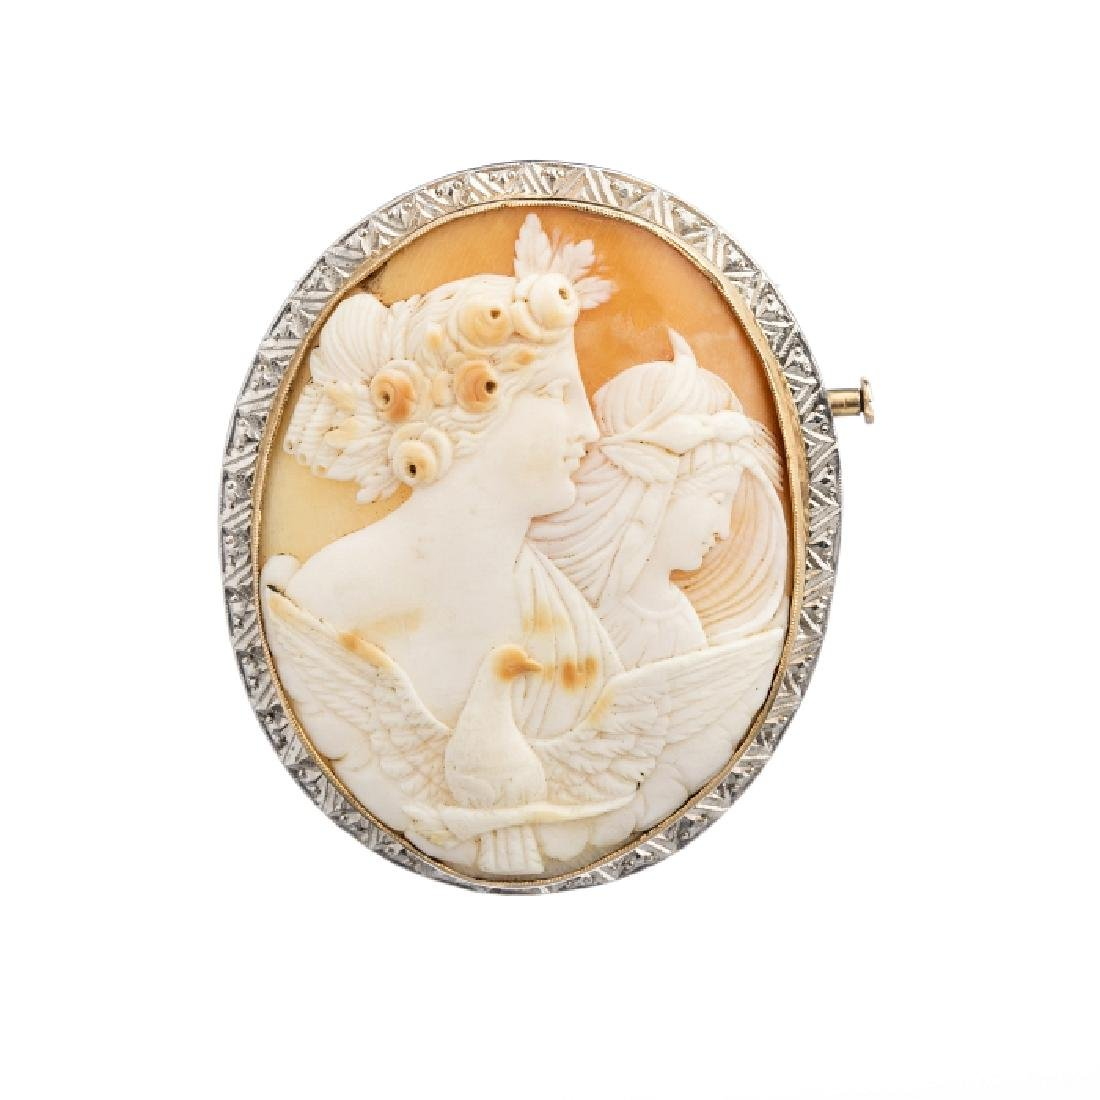 Brooch with shell cameo with figures